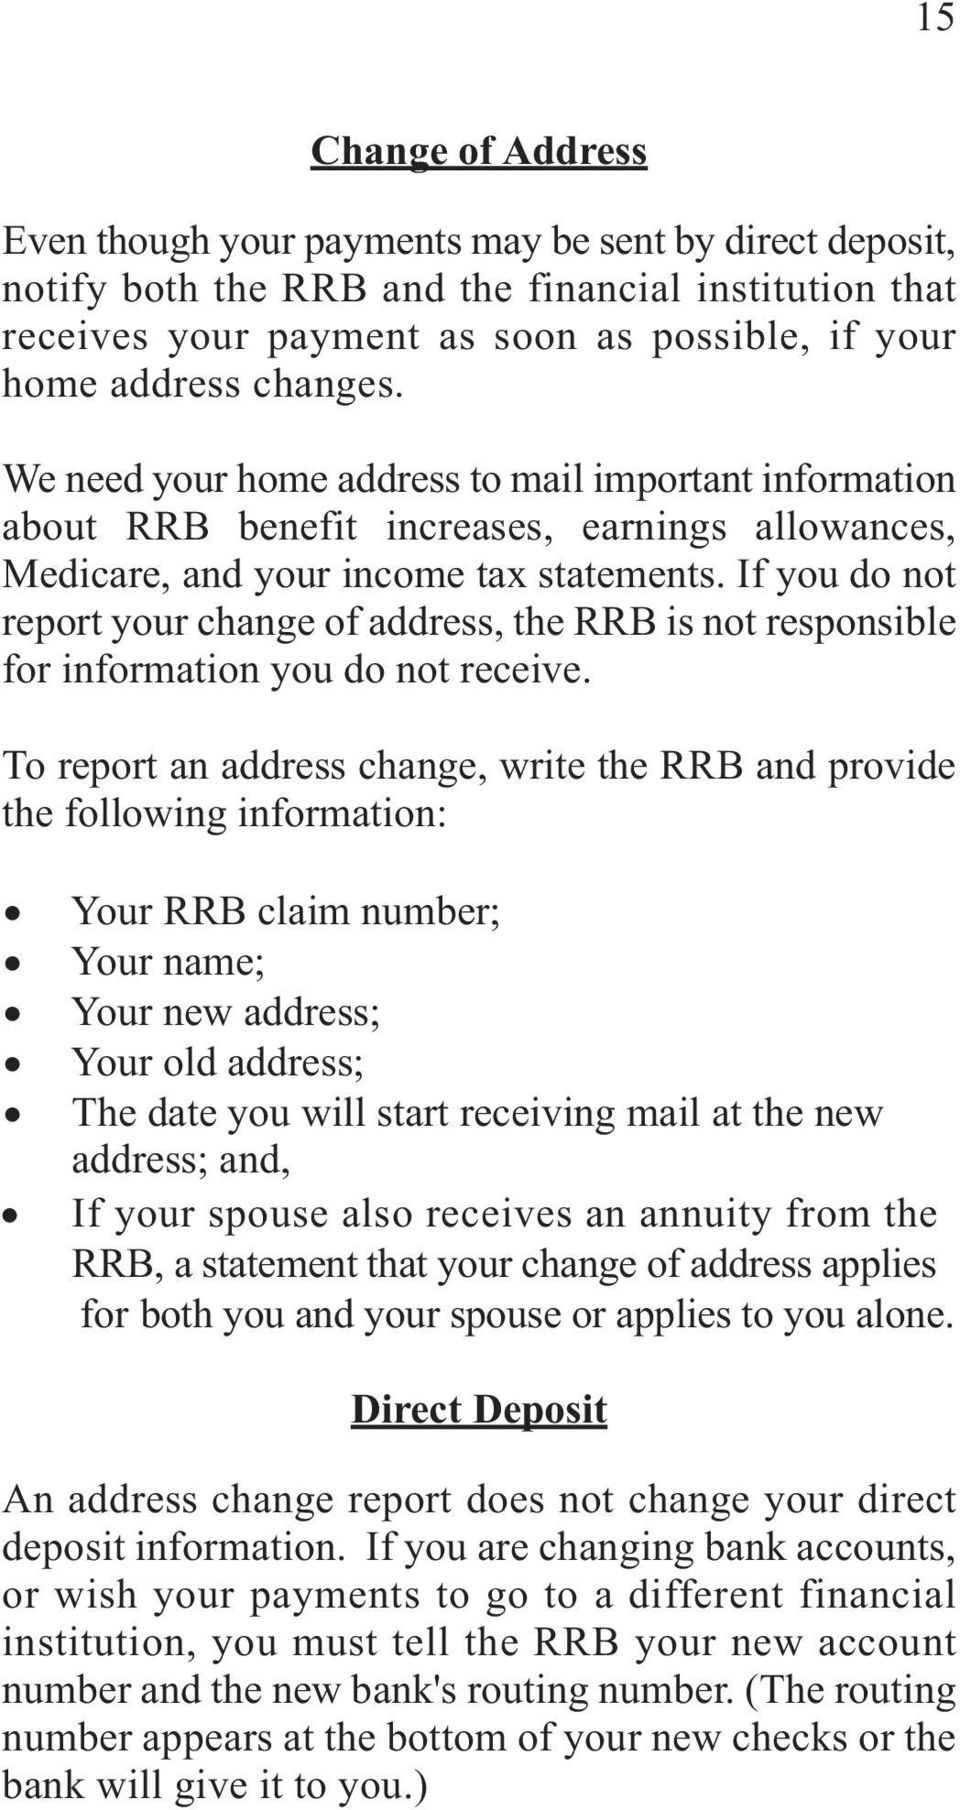 If you do not report your change of address, the RRB is not responsible for information you do not receive.